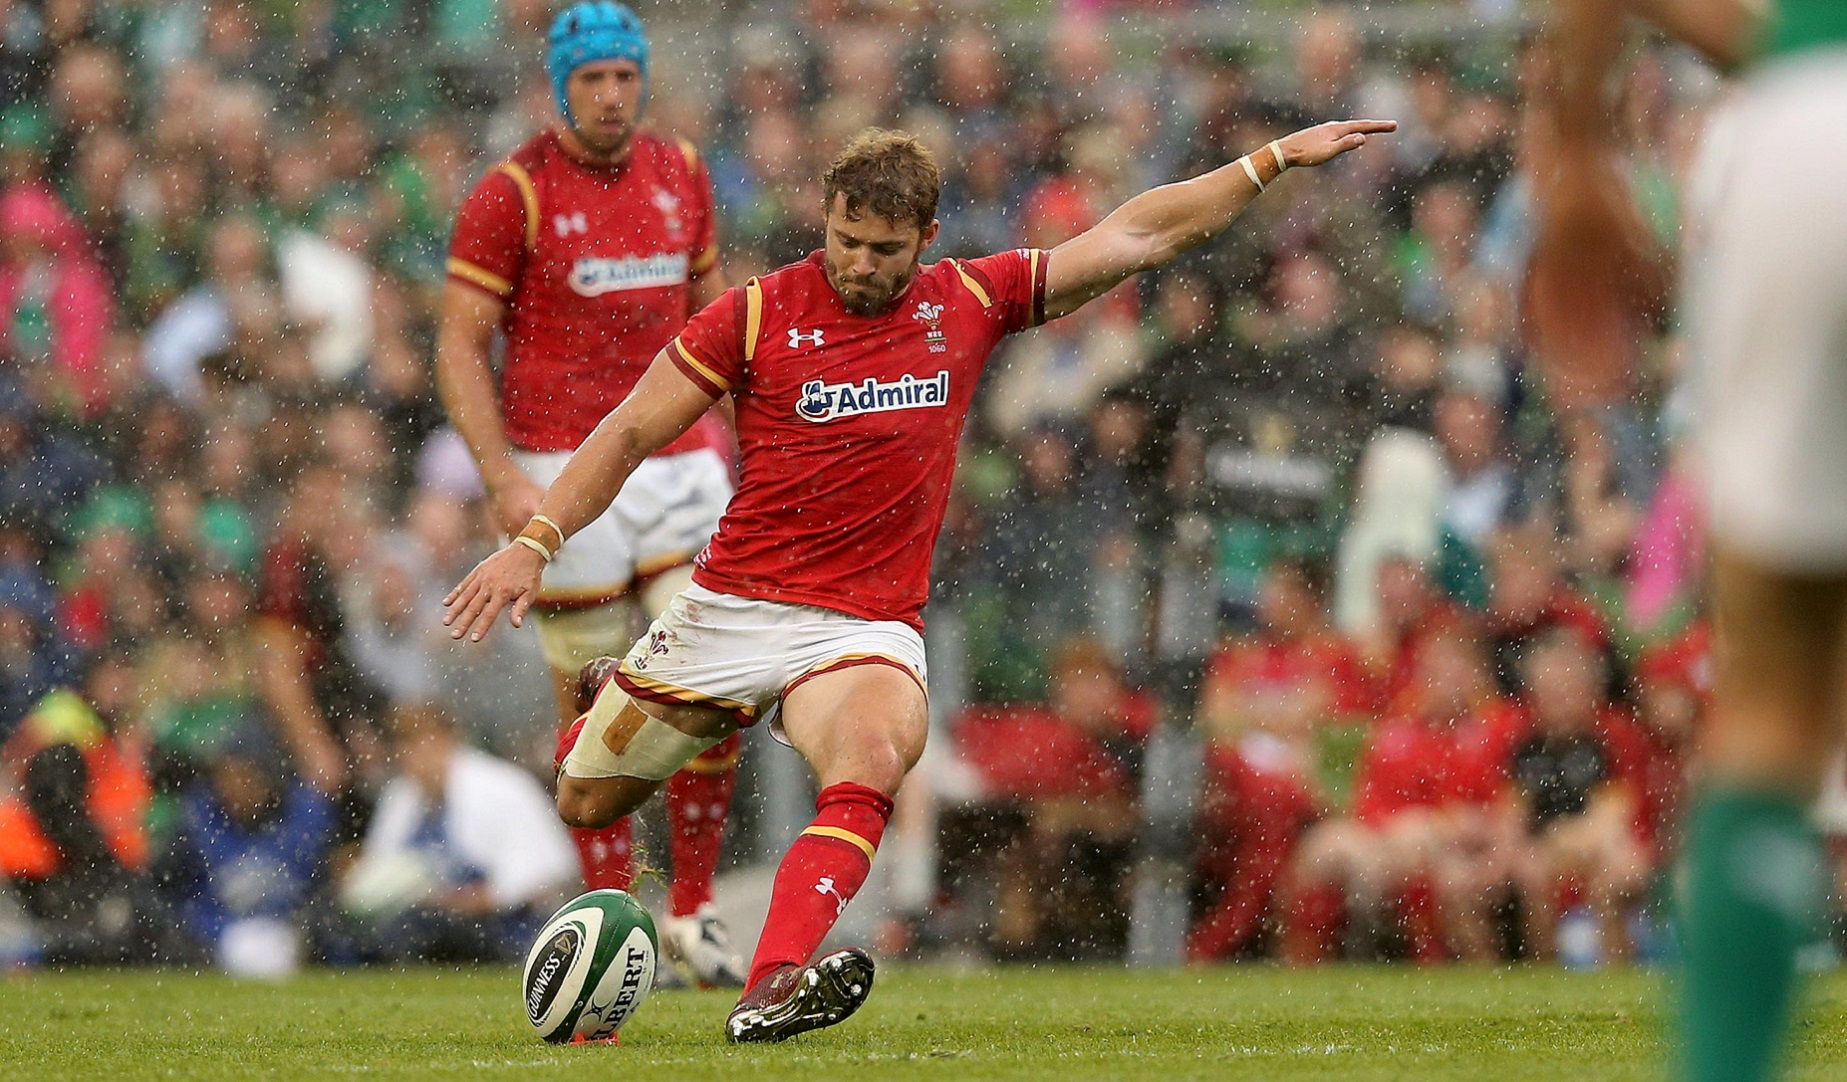 LionsWatch: Halfpenny kicks Wales to historic success